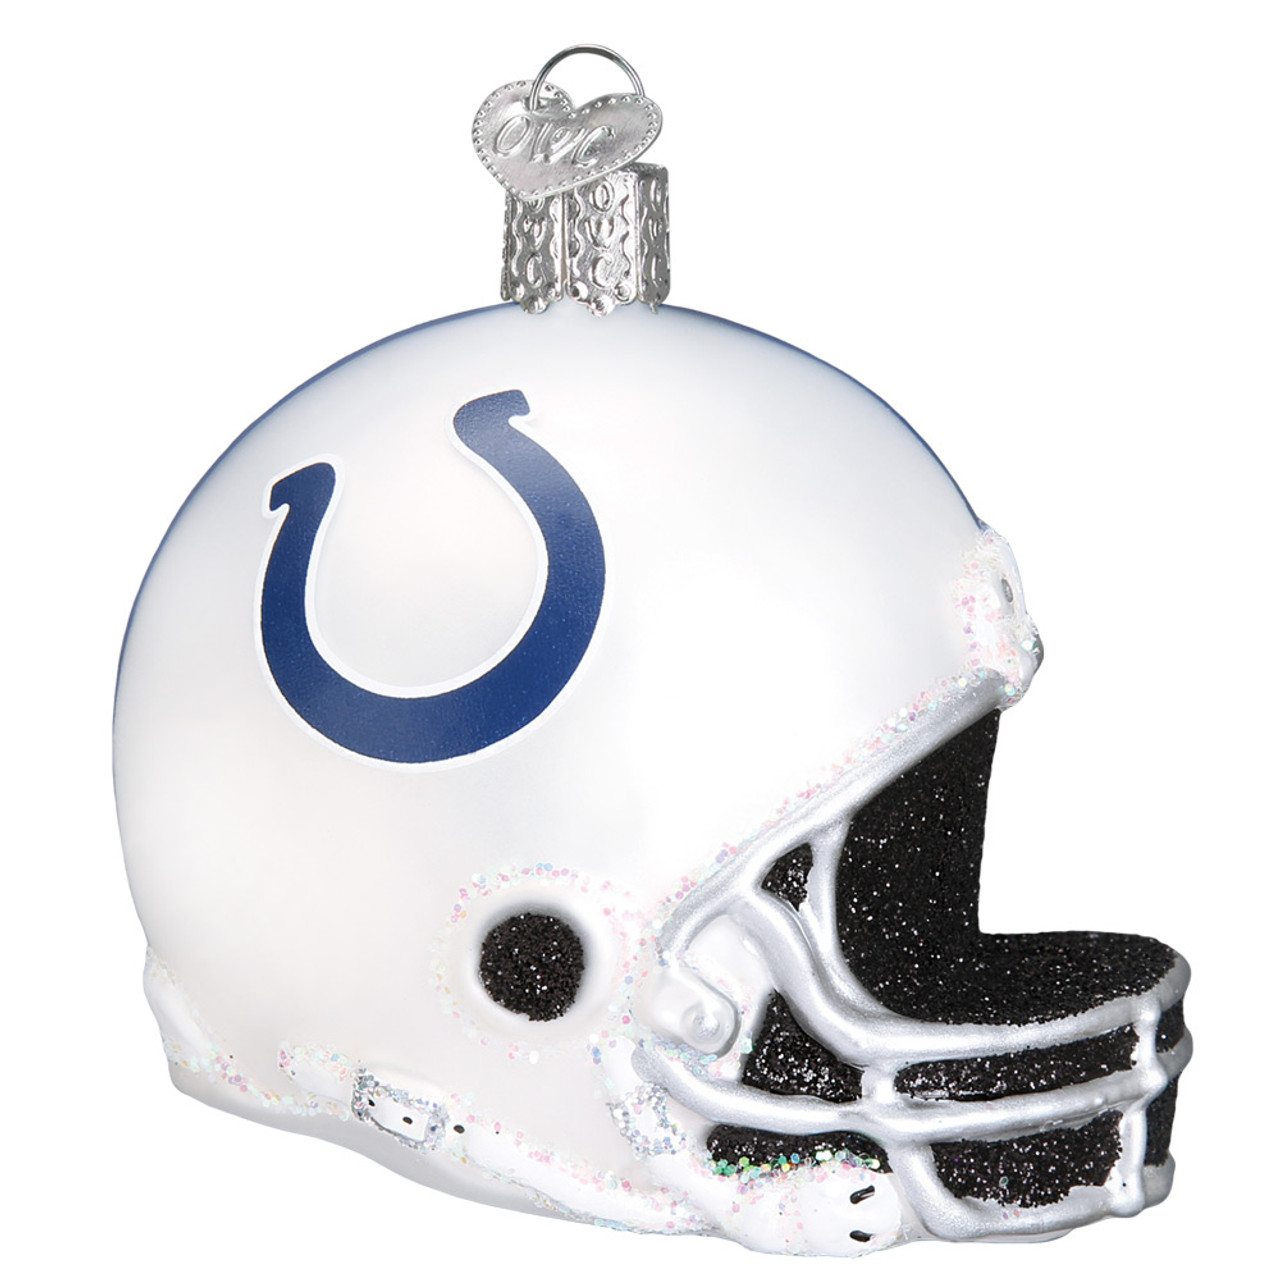 Indianapolis Colts Nfl Helmet Glass Ornament 3 1 4 Owc 71417